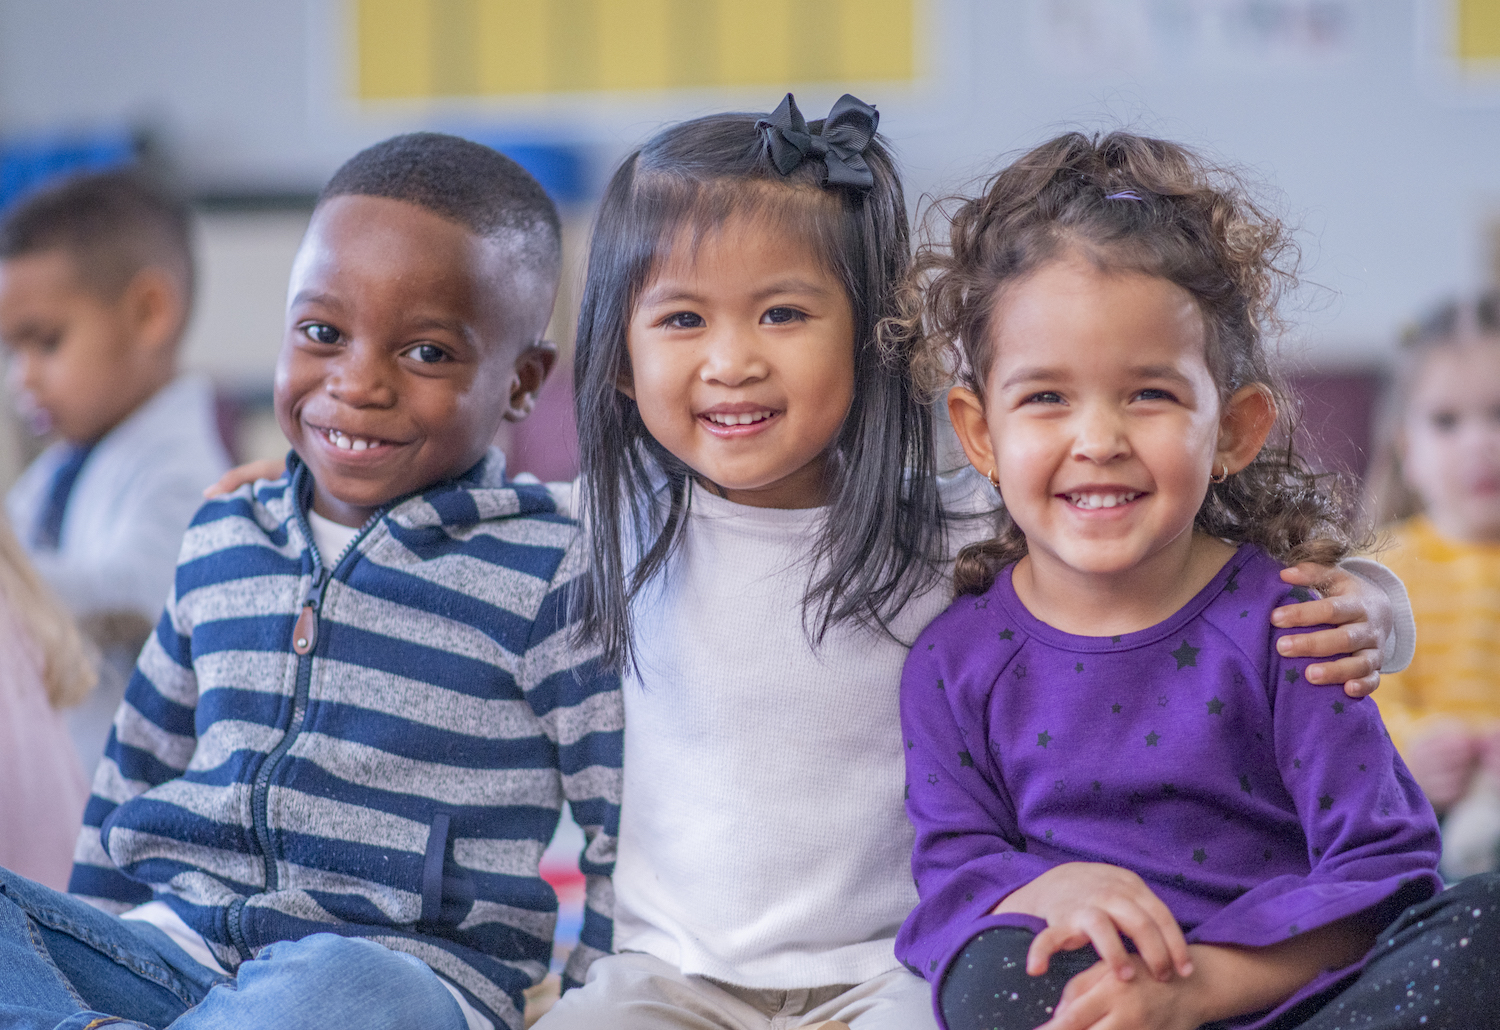 A multi-ethnic group of children sit close together on the floor, with their legs crossed and their arms around one another. They are smiling and enjoying their time together.